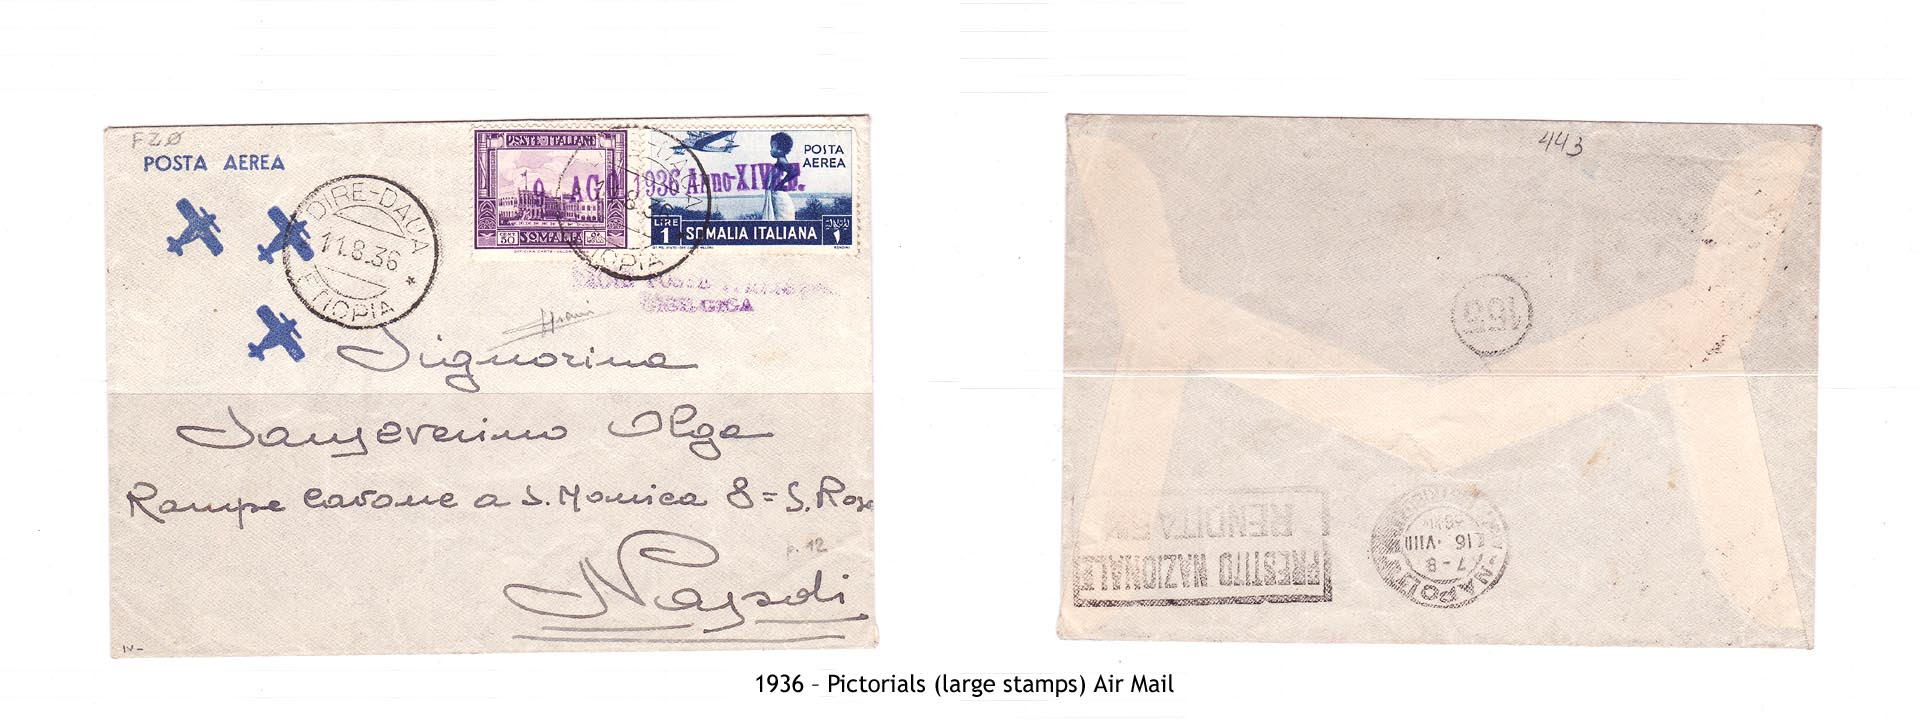 1936 – Somalia pictorials (large stamps) Air Mail